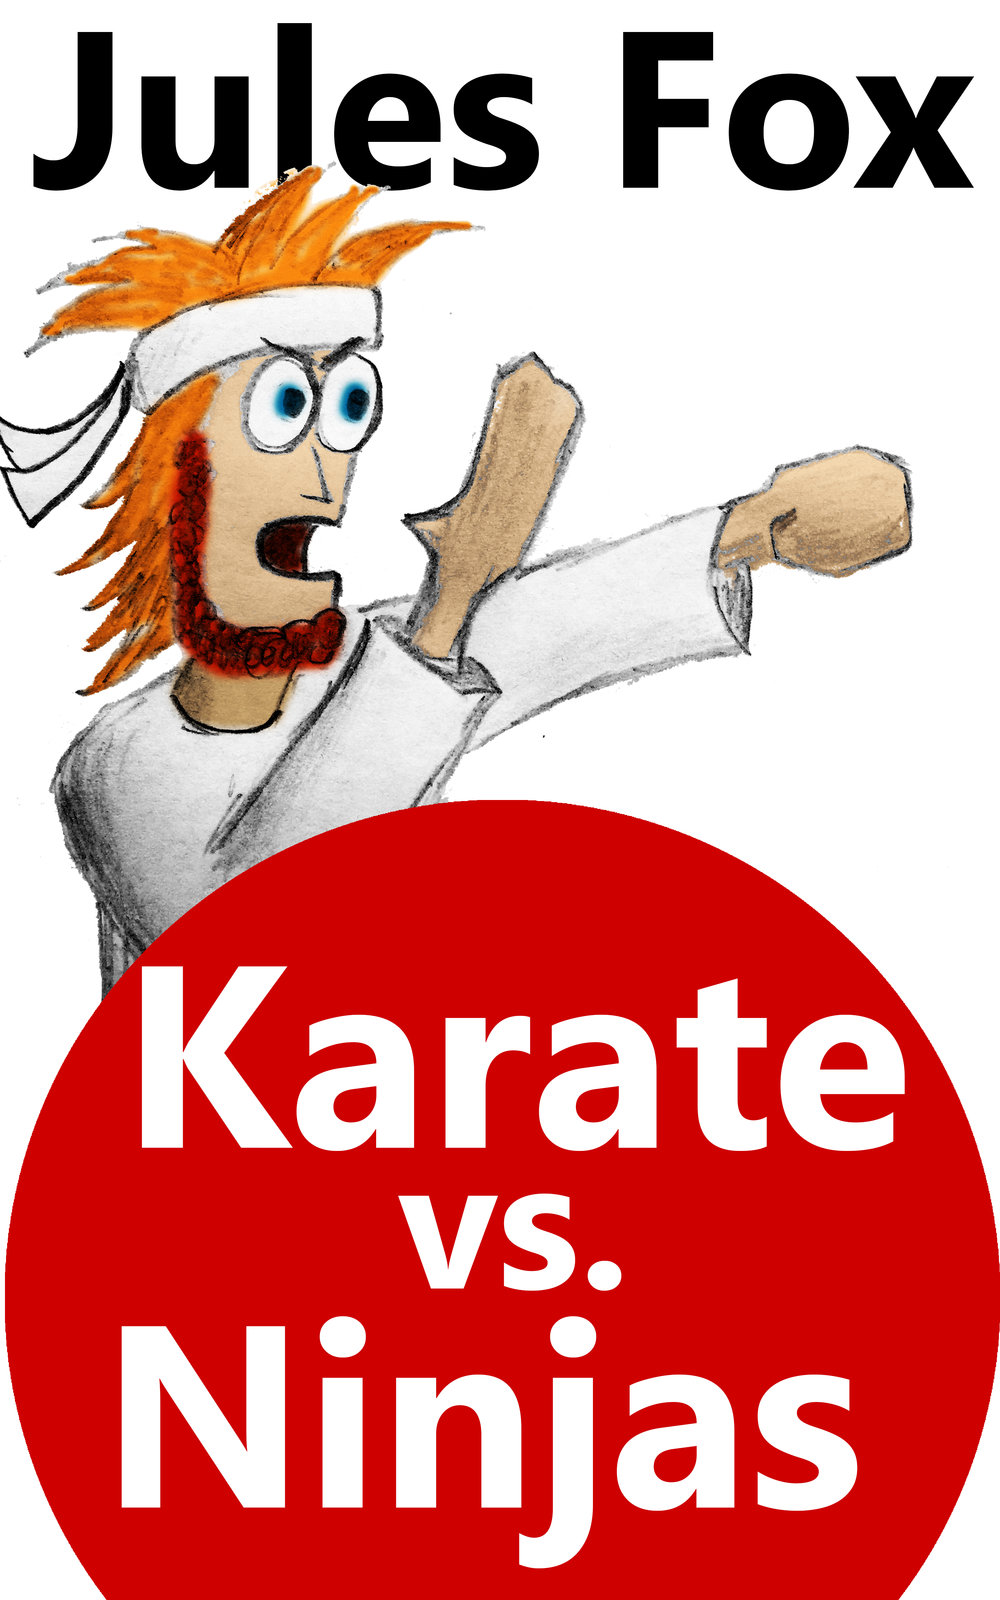 Karate Vs. Ninjas 1 - Origins    White Karate, the baby born with a headband on, trains his entire life to try to live up to Sensei's expectations. But when the Scroll of Ultimate Power is stolen from the dojo and Sensei is gone, it is up to him to keep the karate spirit alive and fight off the ninjas!  Will he live up to his destiny?  This is White Karate's side of the Origins story.  An action comedy for children ages 8-12.